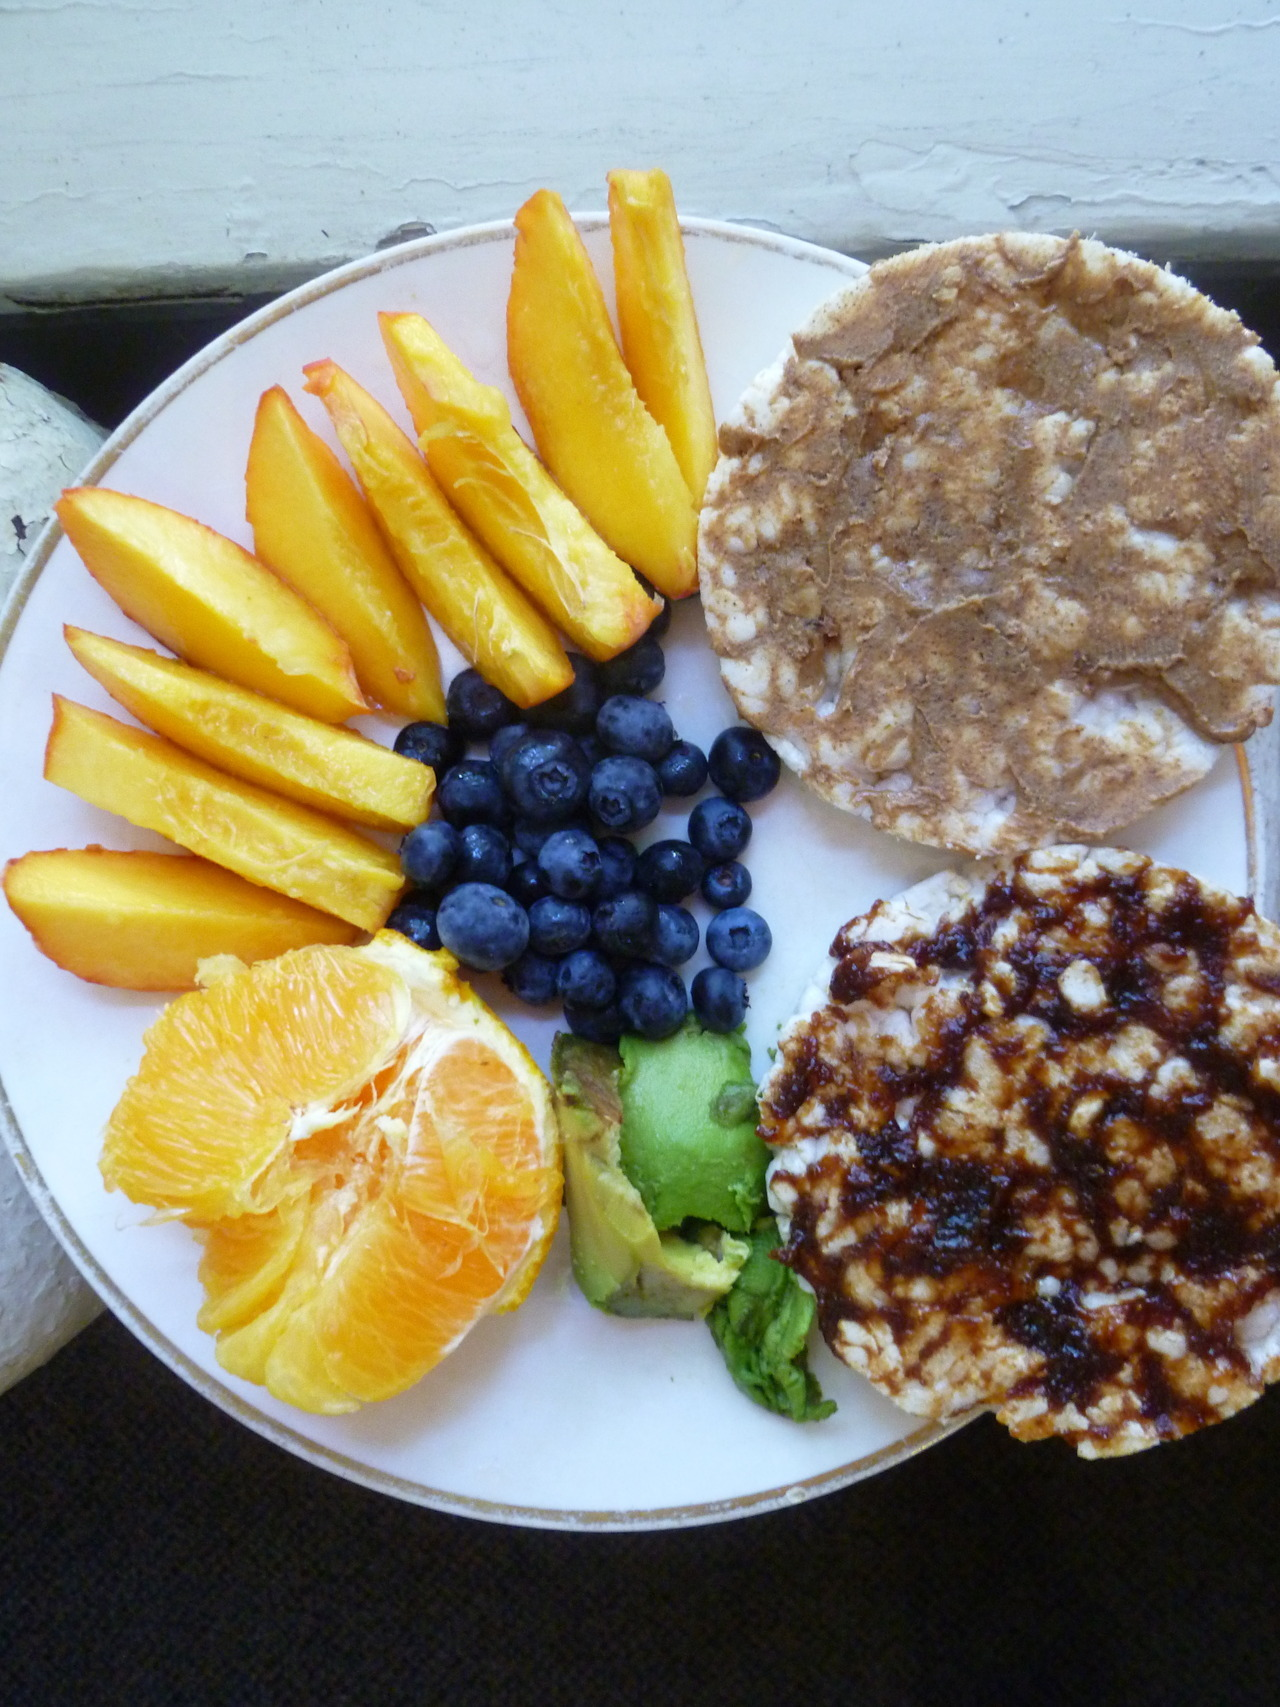 morning meals: peach, orange, blueberries, avocado and almond and fig butter spread across 2 plain rice cakes